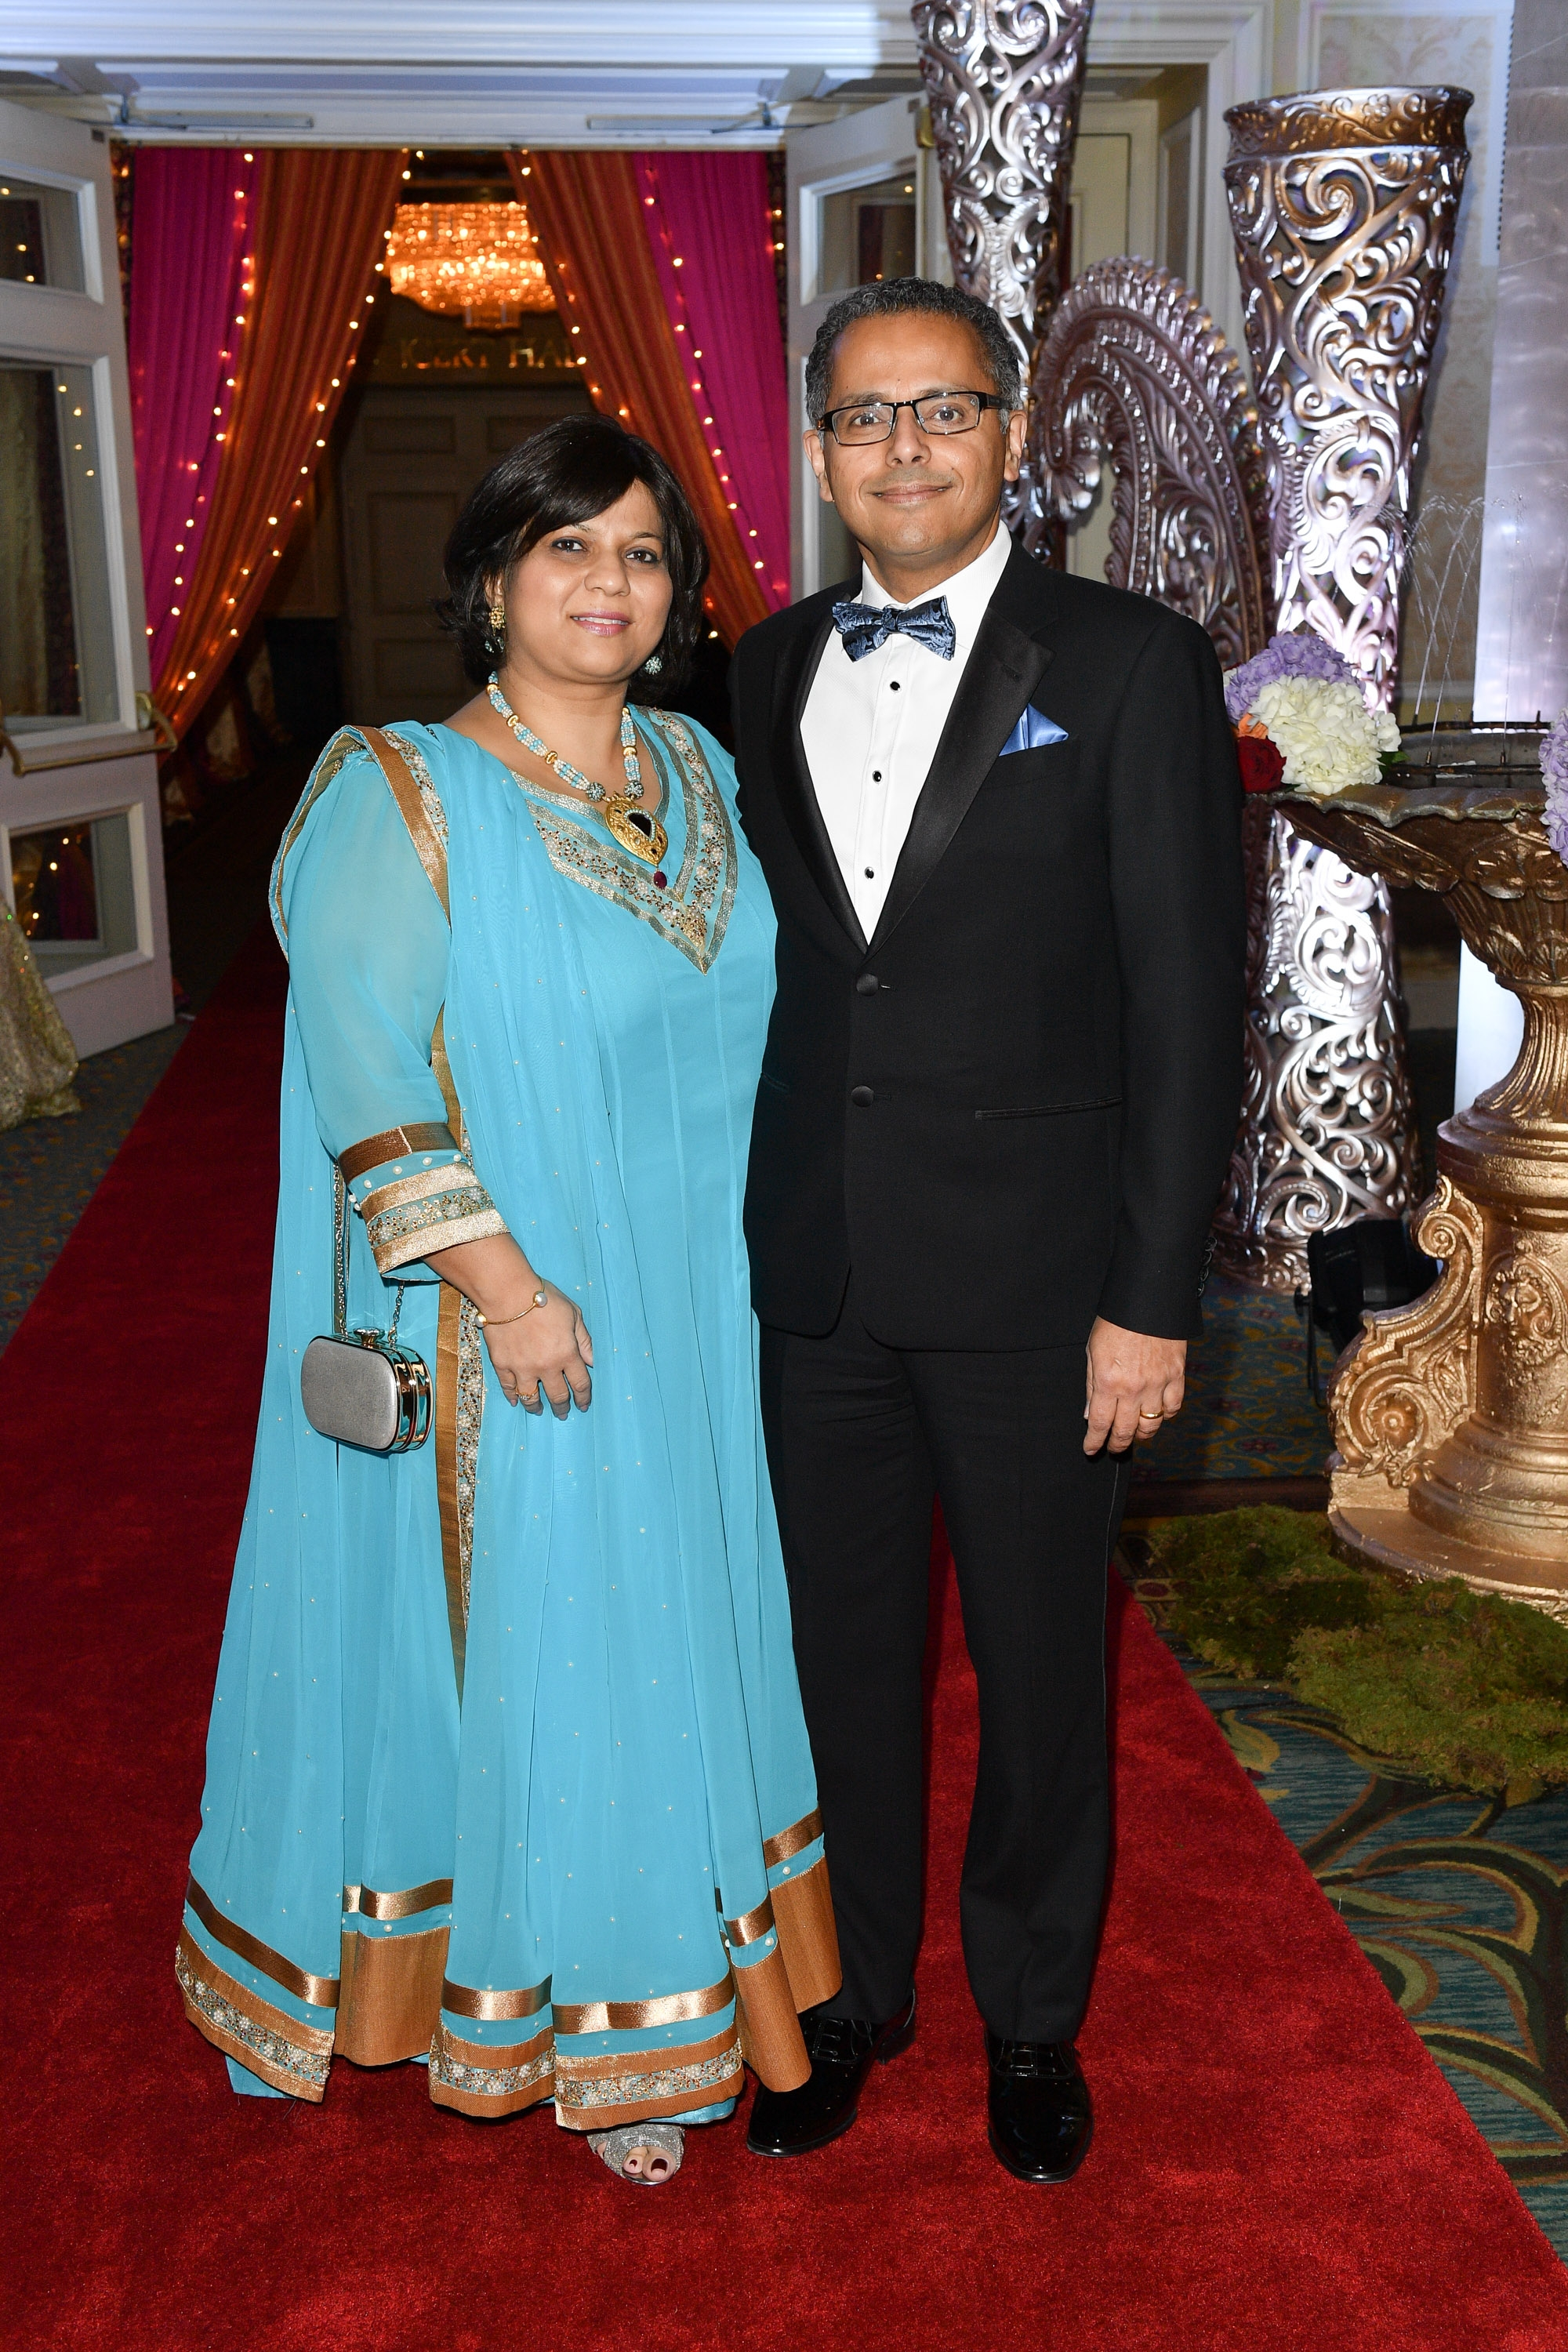 Diwali Commitee member Mala Chopra and Dr Anil Chopra Medical Director Emergency Medicine UHN